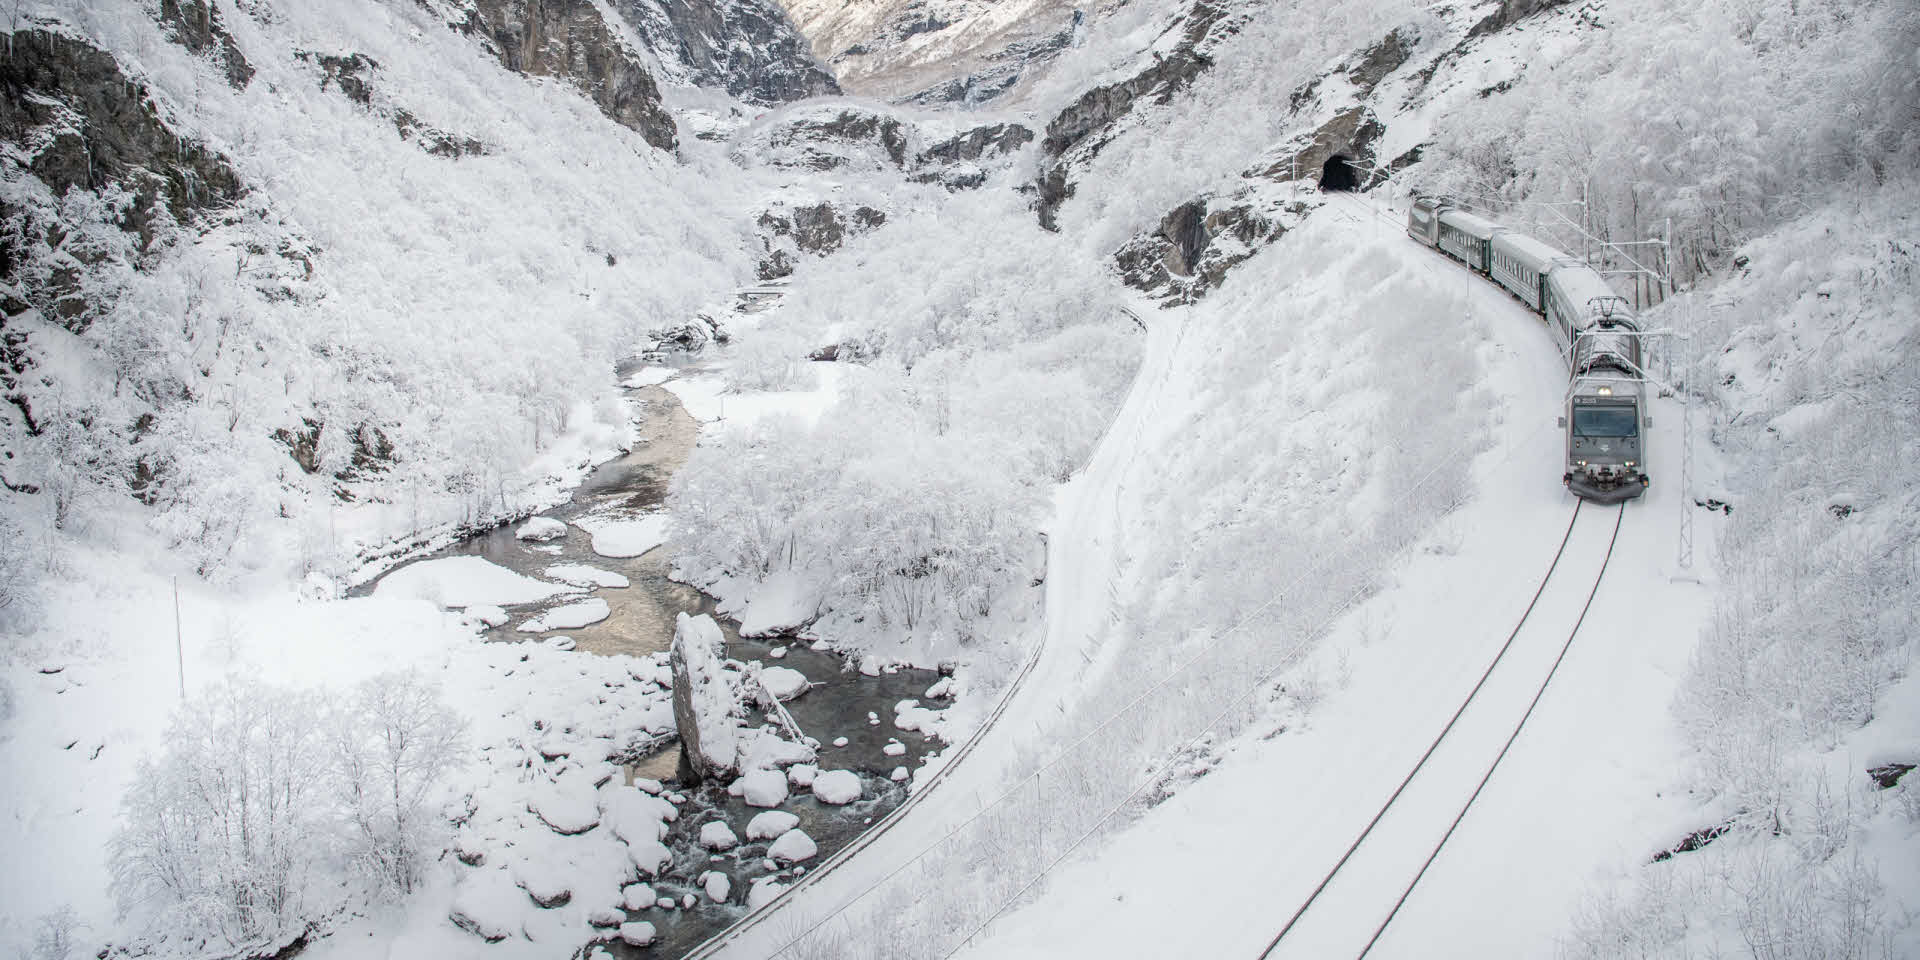 The Flam Railway in winter landscape.